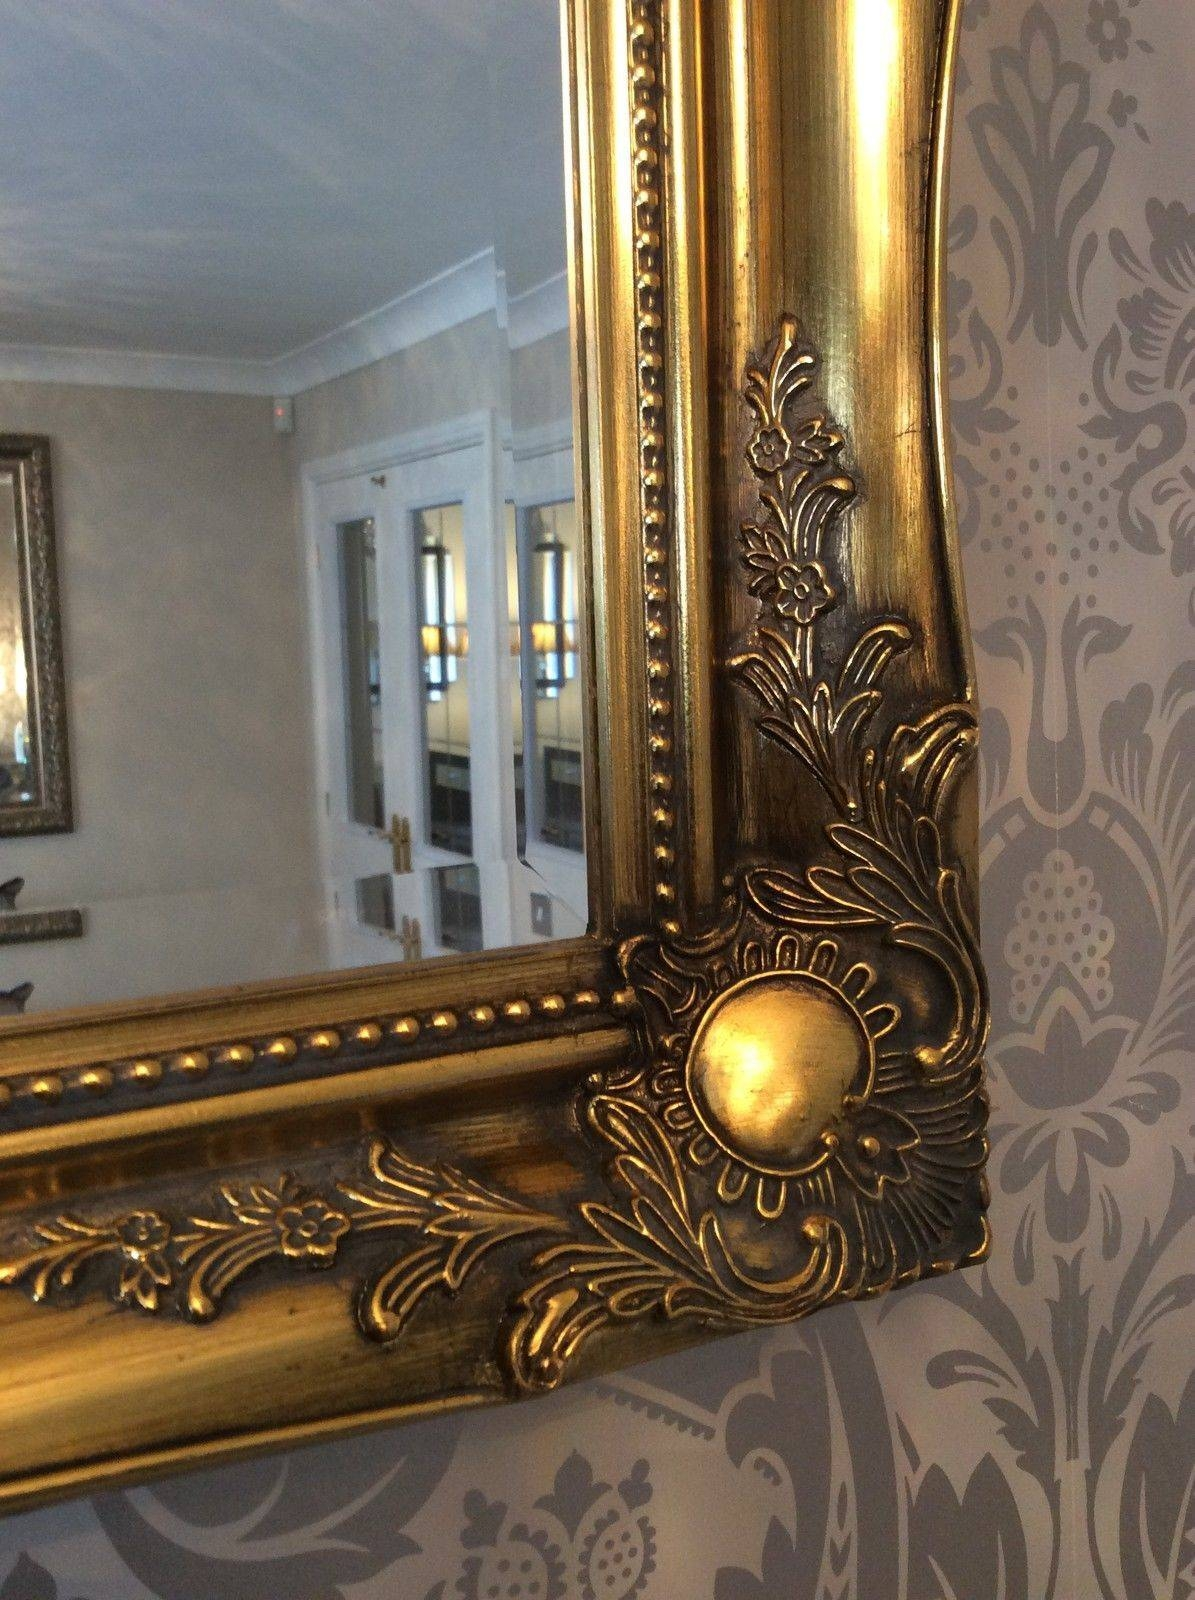 Antique Gold Shabby Chic Framed Ornate Overmantle Mirror – Choose Inside Gold Shabby Chic Mirrors (View 3 of 15)